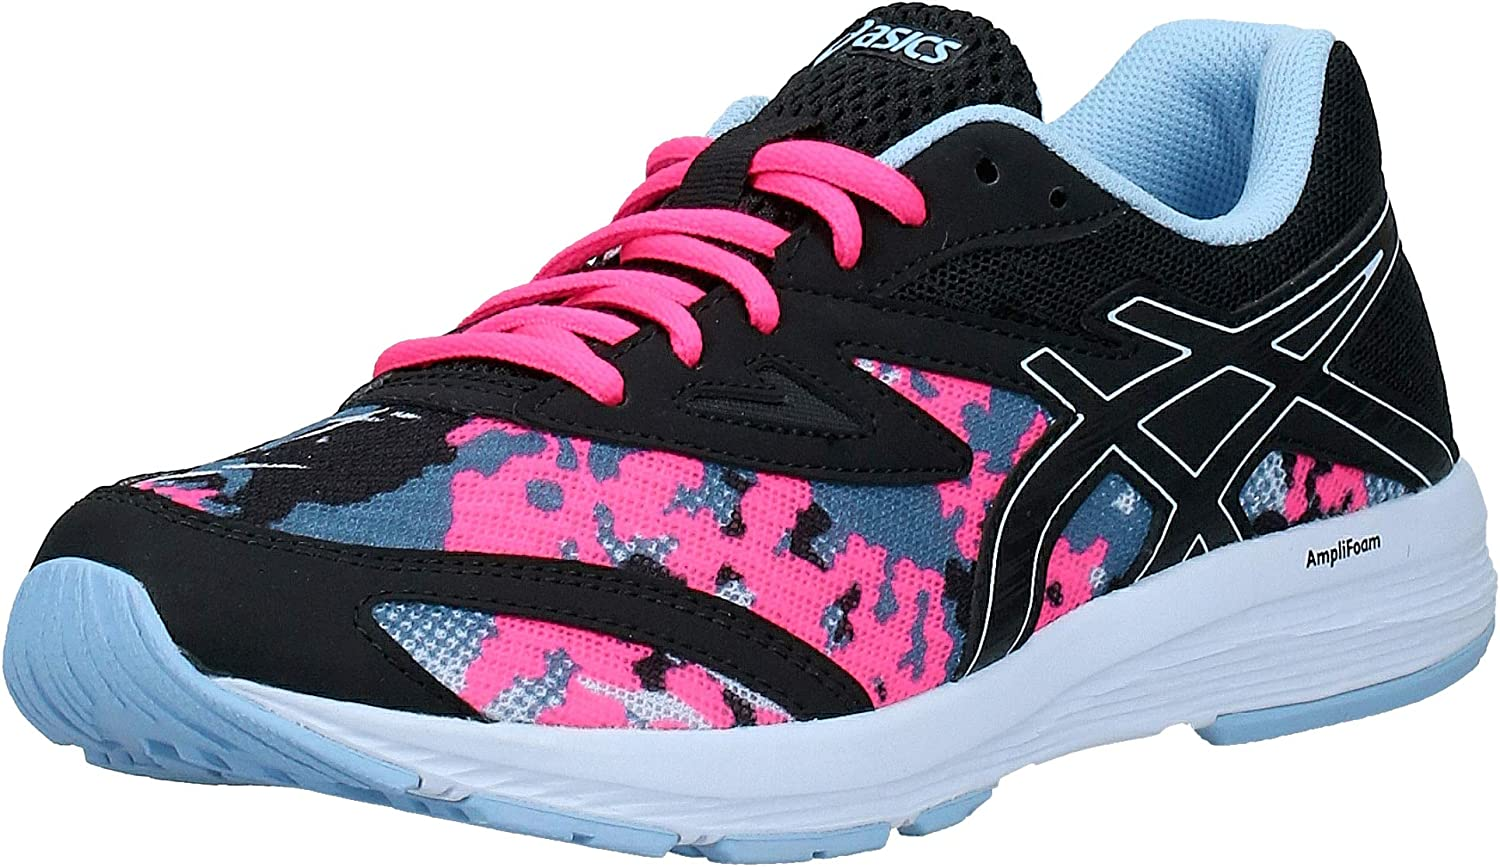 Conjugate Get injured Bend  ASICS Amplica GS SP Junior Running Shoe - J5.5 Black: Amazon.co.uk: Shoes &  Bags